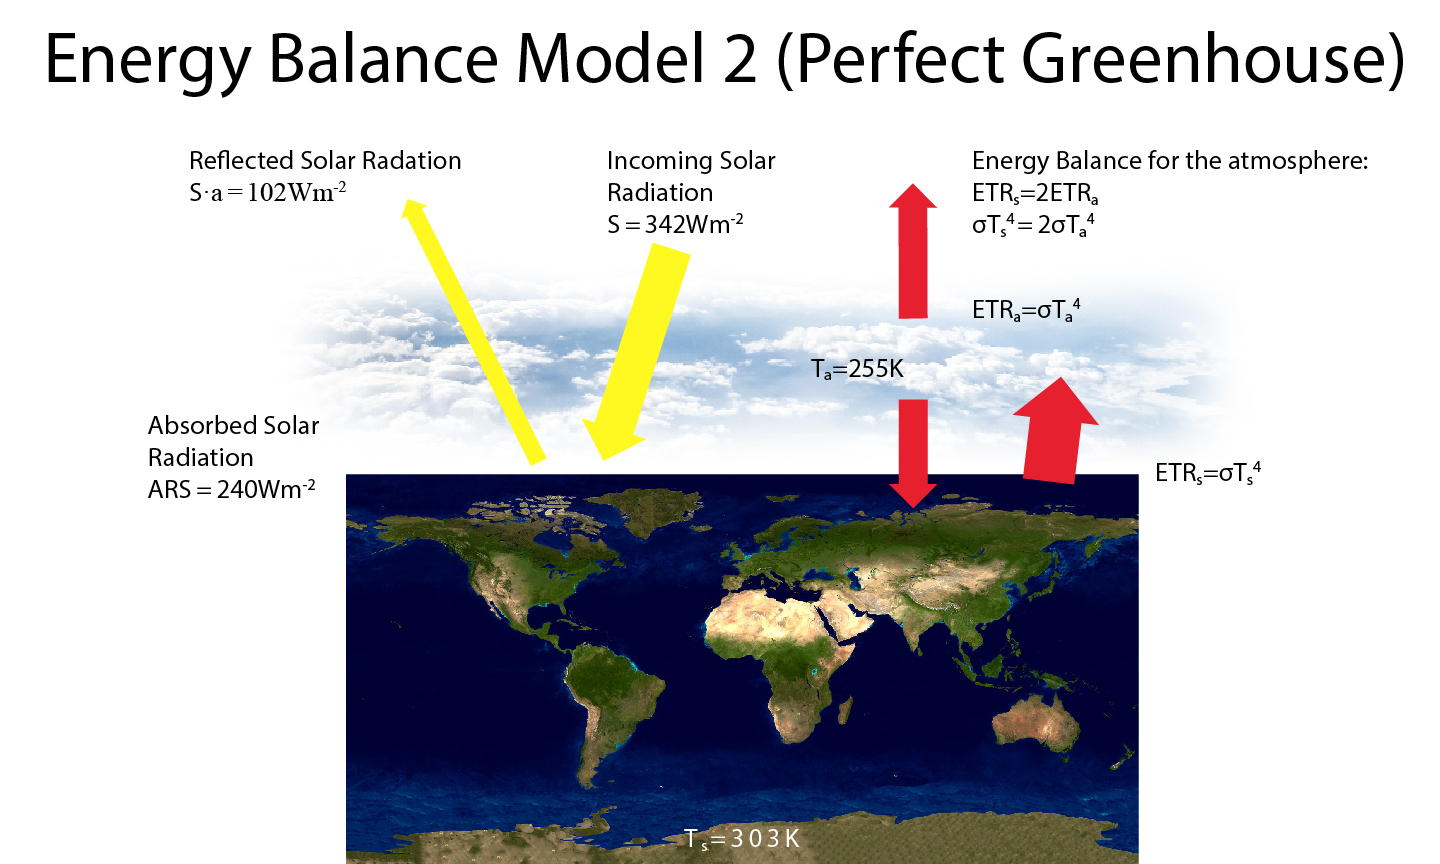 As Fig. B2.1 but for the 'Perfect Greenhouse' model.